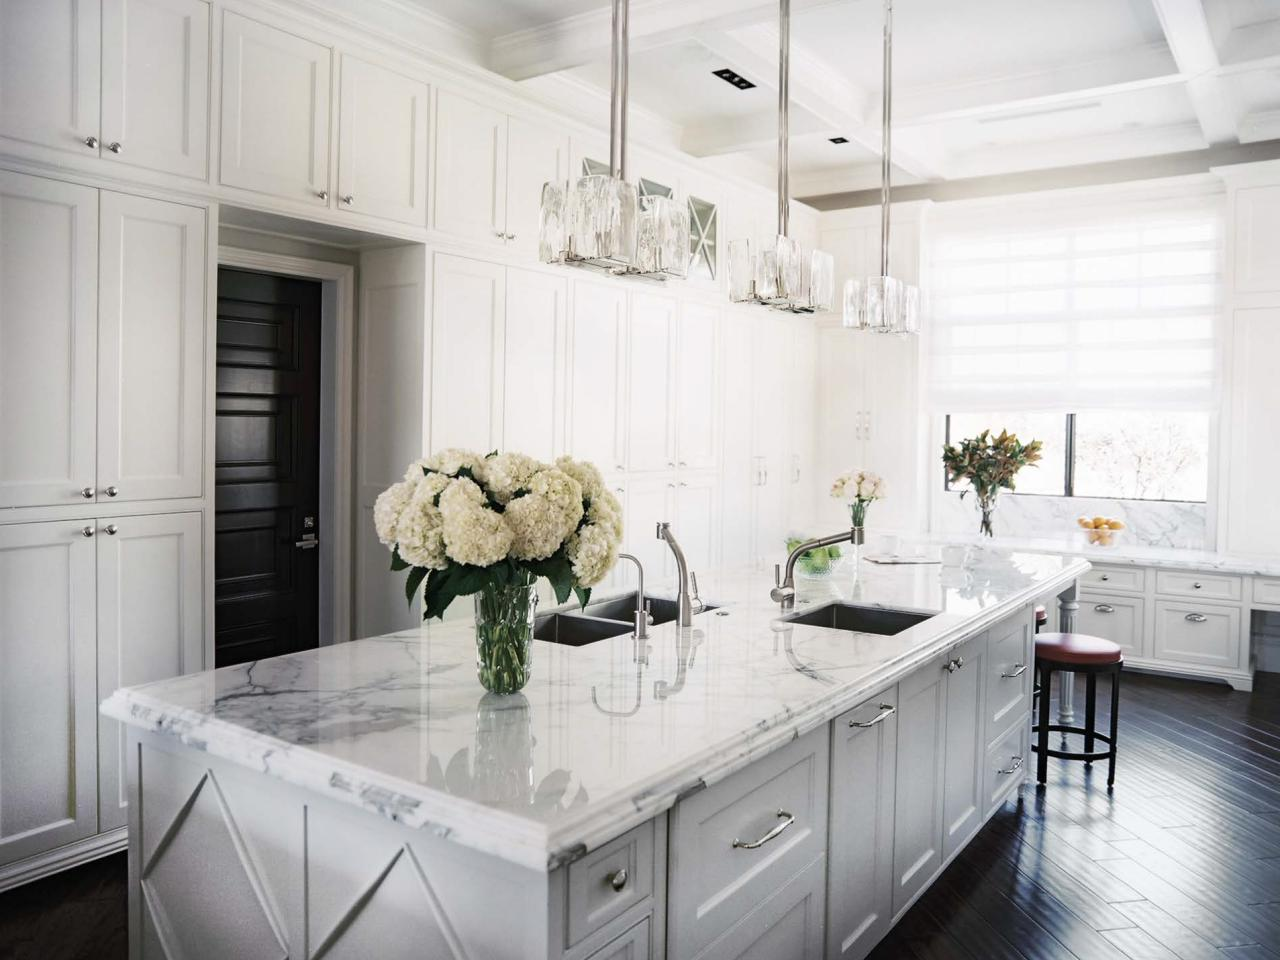 Kitchen Remodels With White Cabinets Pictures   Roy Home ... on Kitchen Remodeling Ideas Pictures  id=73850